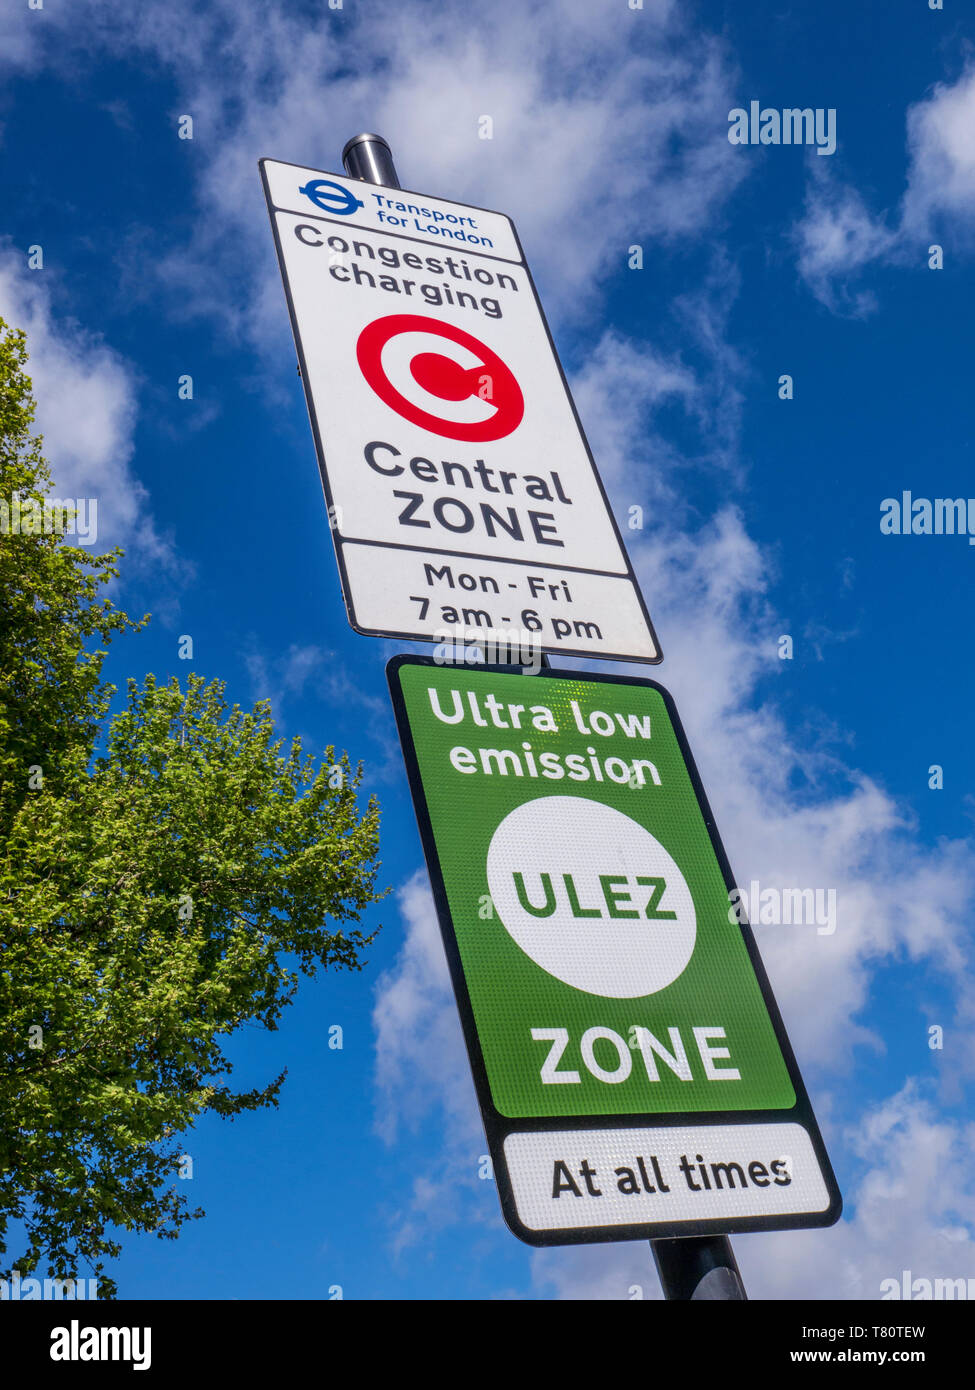 'ULEZ' TFL congestion charging central zone sign with 'ULEZ' ultra low emission zone sign against blue sky with tree in fresh green leaf London SE11 - Stock Image